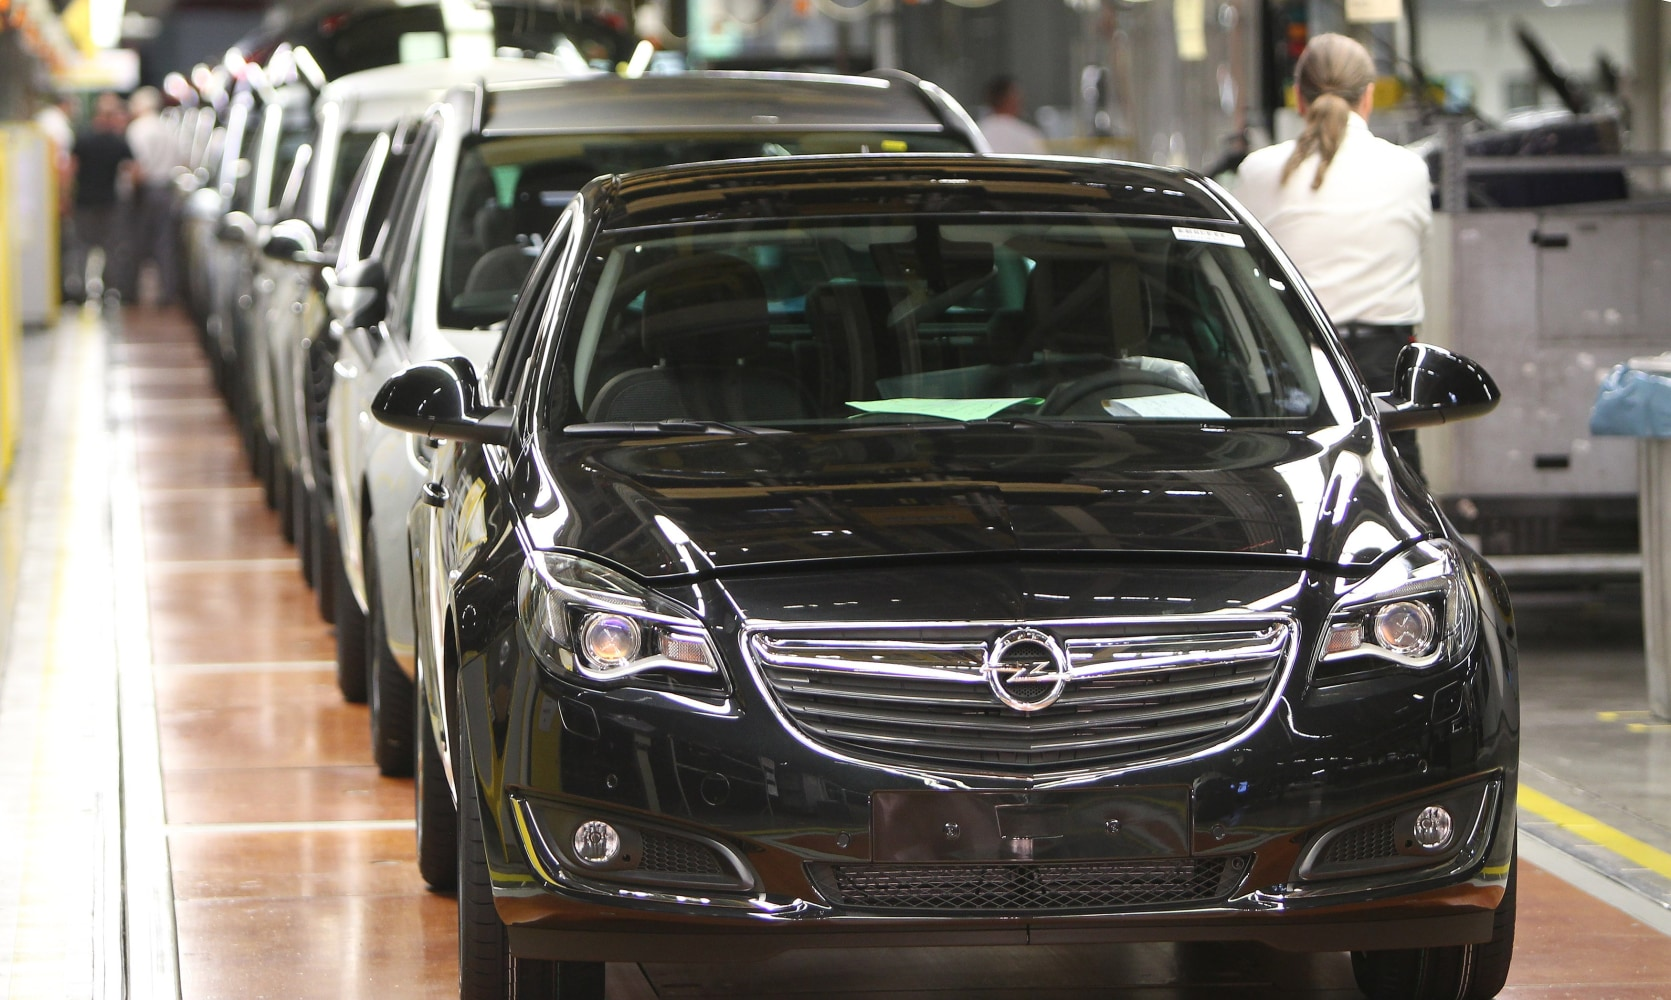 PSA Group expected to announce purchase of GM's Opel